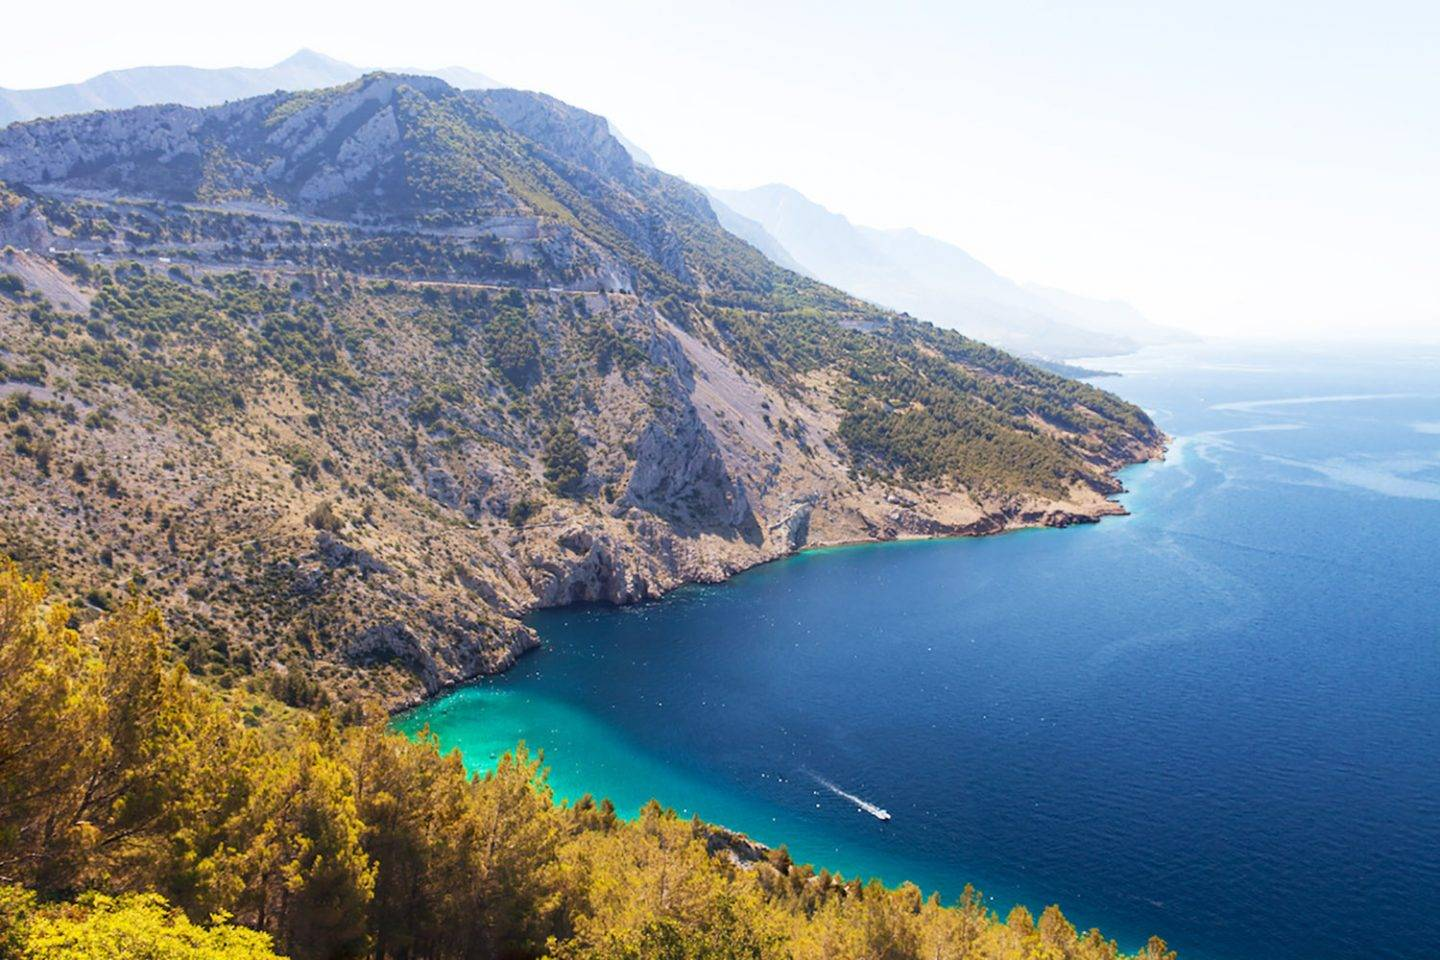 The stellar view along the road of the Makarska stretch(yes, we absolutely swam down there!